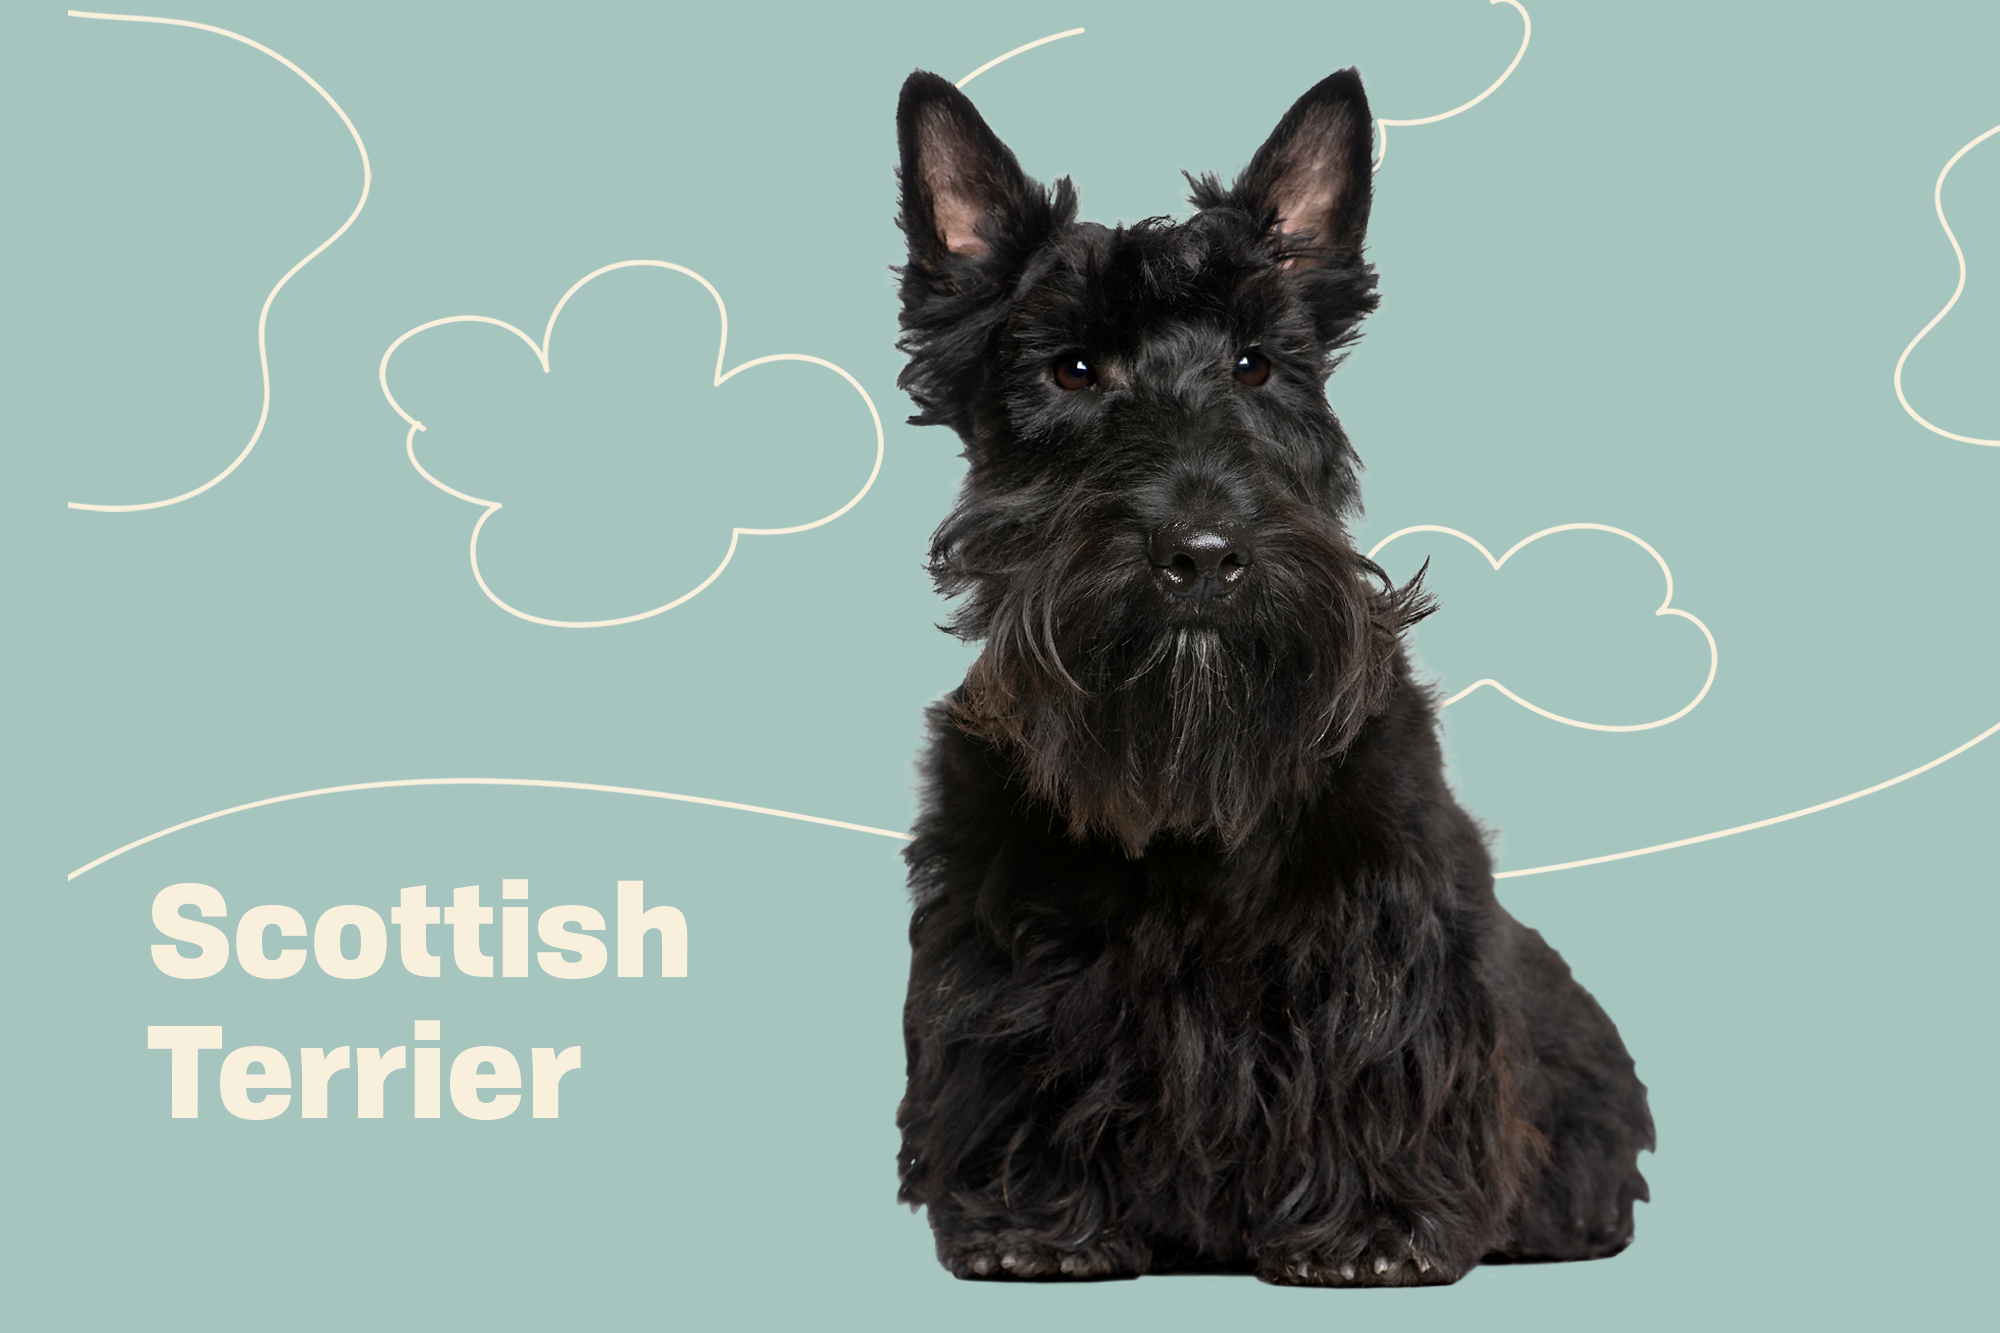 Scottish Terrier Breed Photo